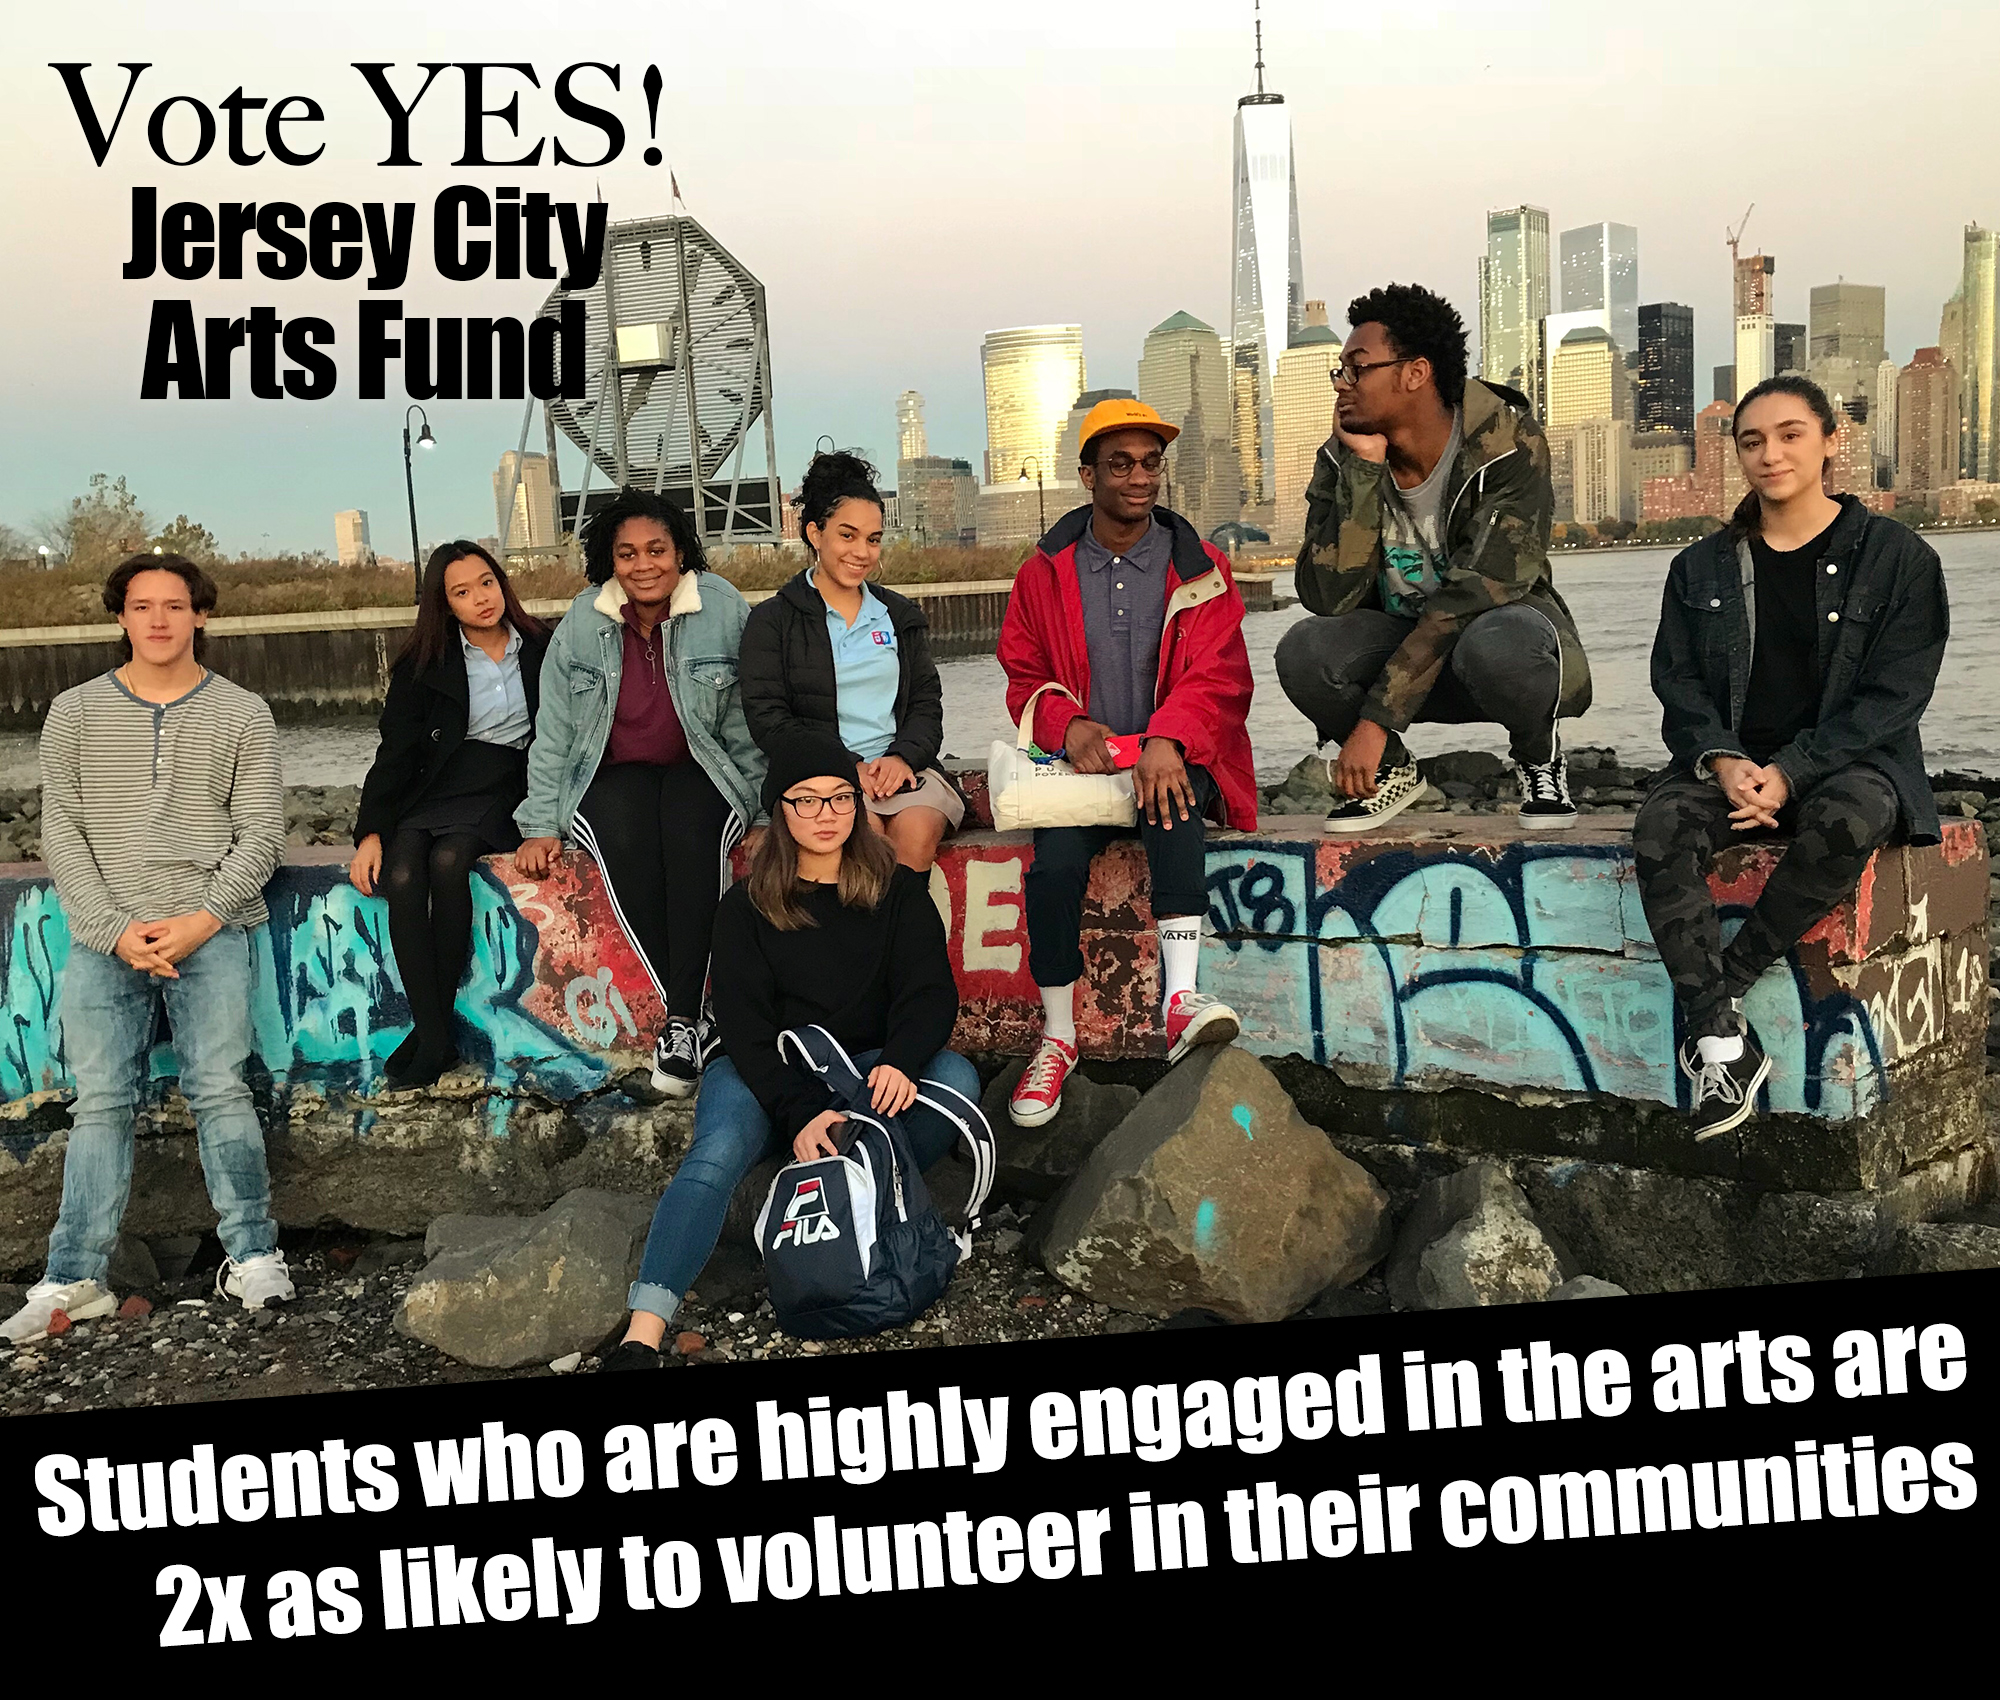 "A group of eight ethnically diverse high school-aged students are smiling at the camera with a city skyline behind them. The words ""Vote yes! Jersey City Arts Fund"" and ""Students who are highly engaged in the arts are 2x as likely to volunteer in their communities"" are seen on the image in white letting."